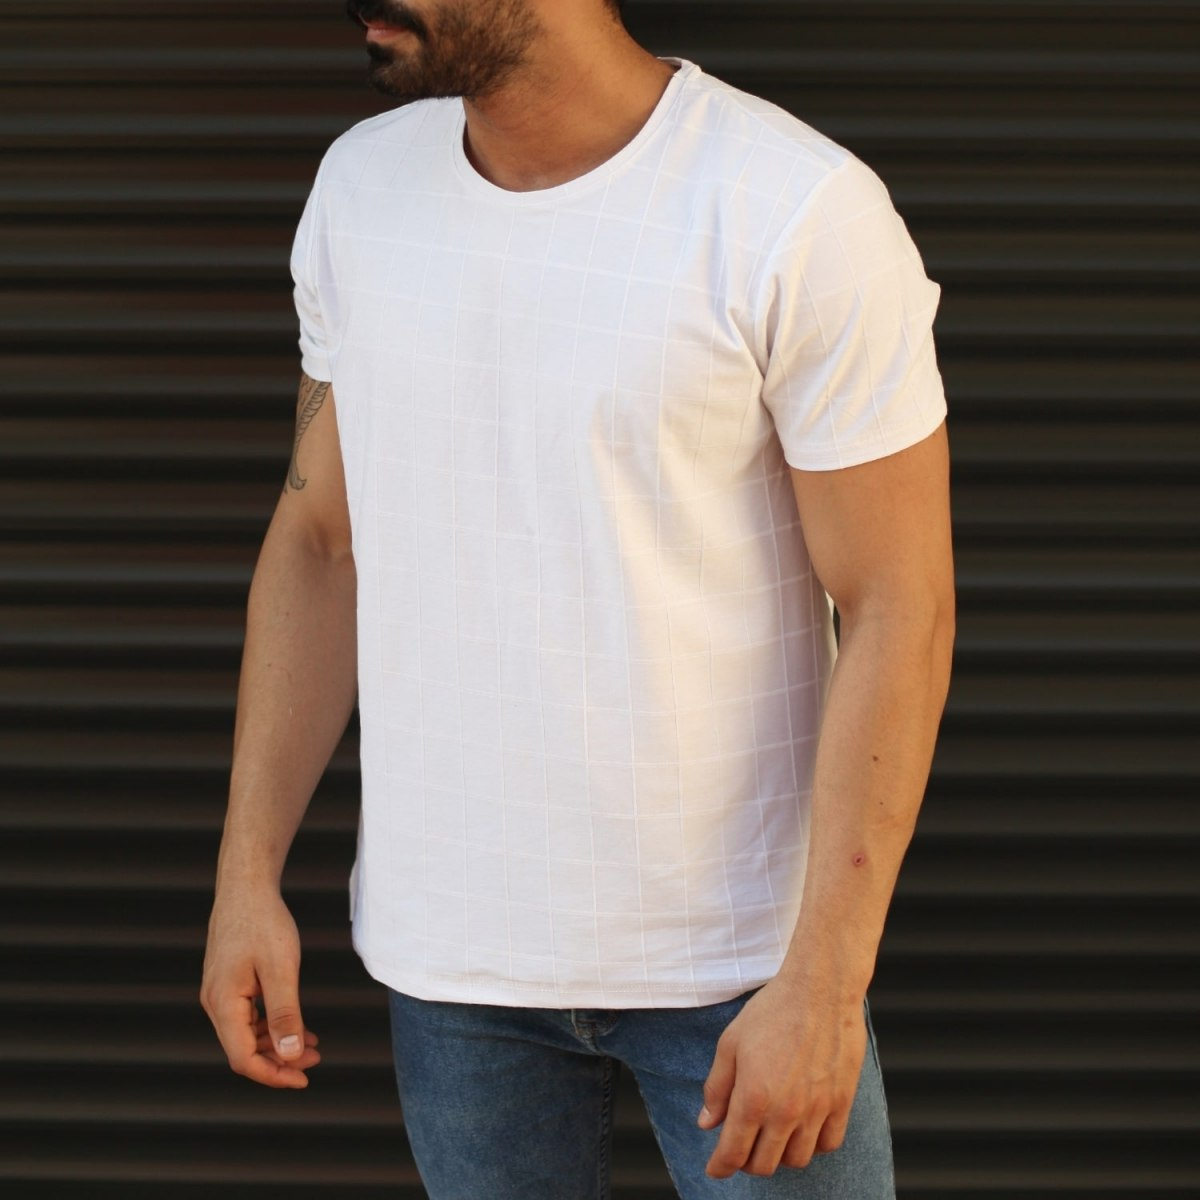 Men's New Look Slim Fit Basic T-Shirt In White Mv Premium Brand - 1